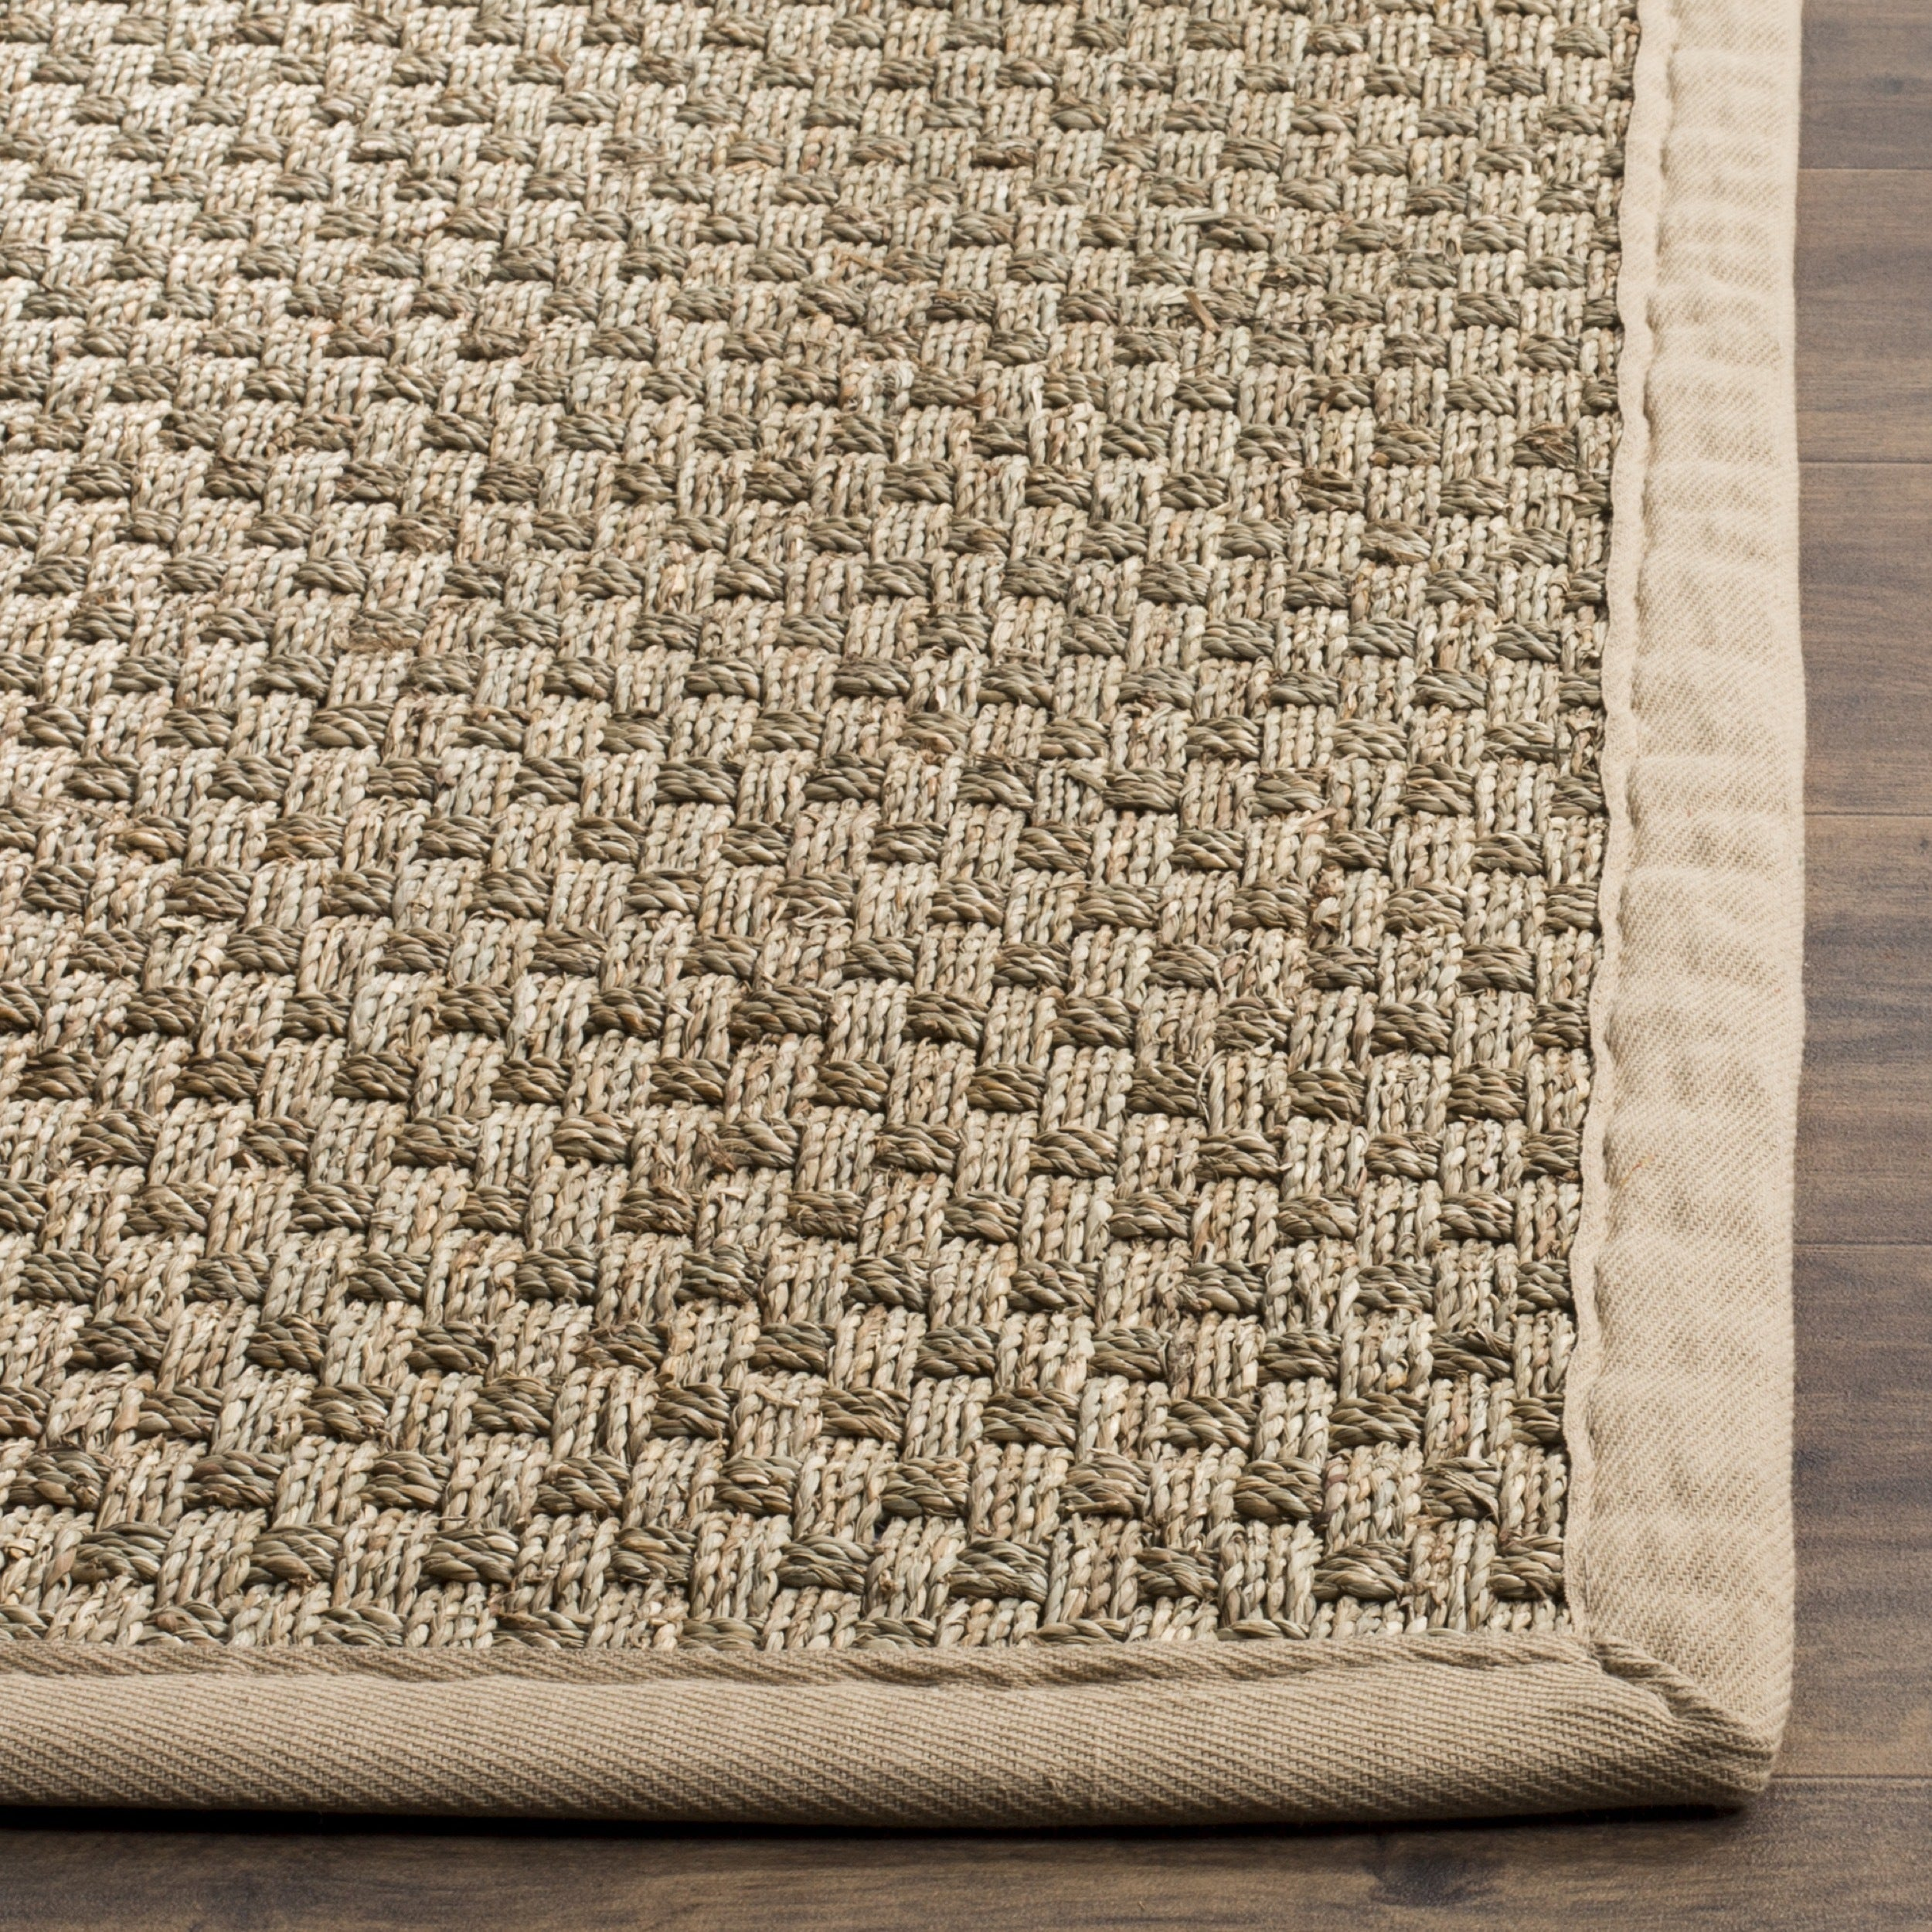 Safavieh Casual Natural Fiber And Beige Border Seagr Rug 4 X 6 On Free Shipping Today 4256747